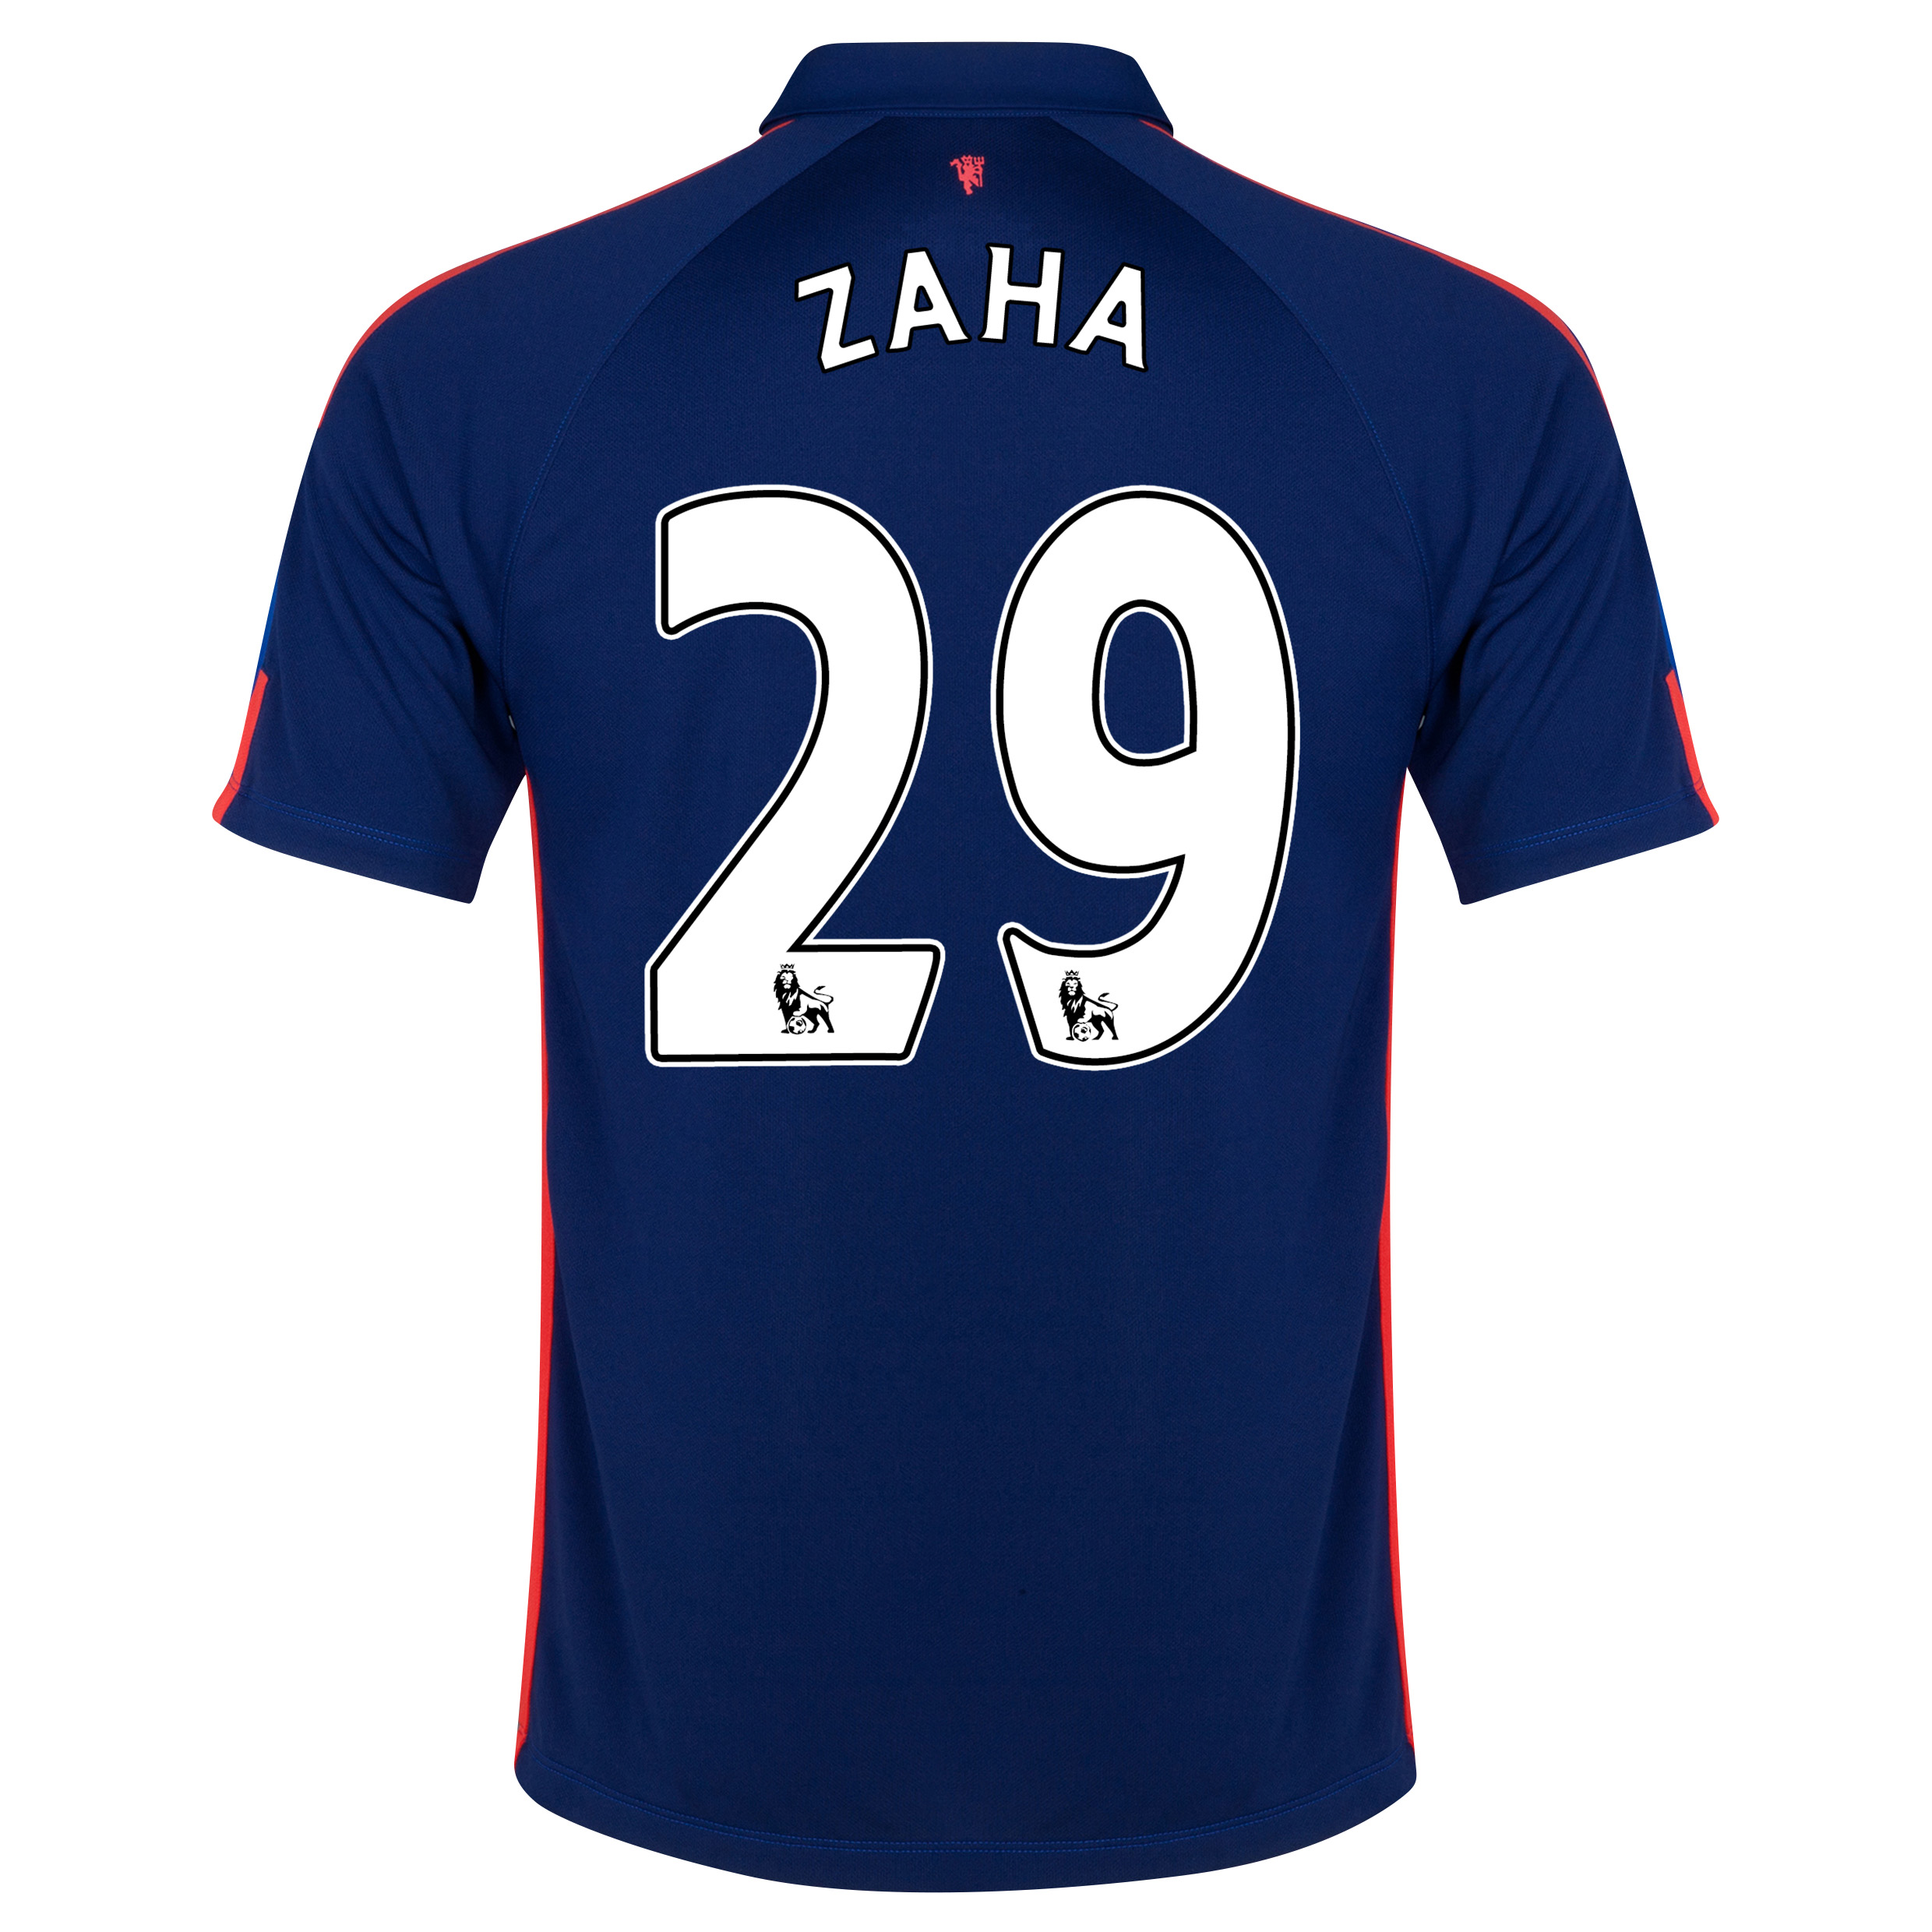 Manchester United Third Kit 2014/15 - Little Boys with Zaha 29 printing